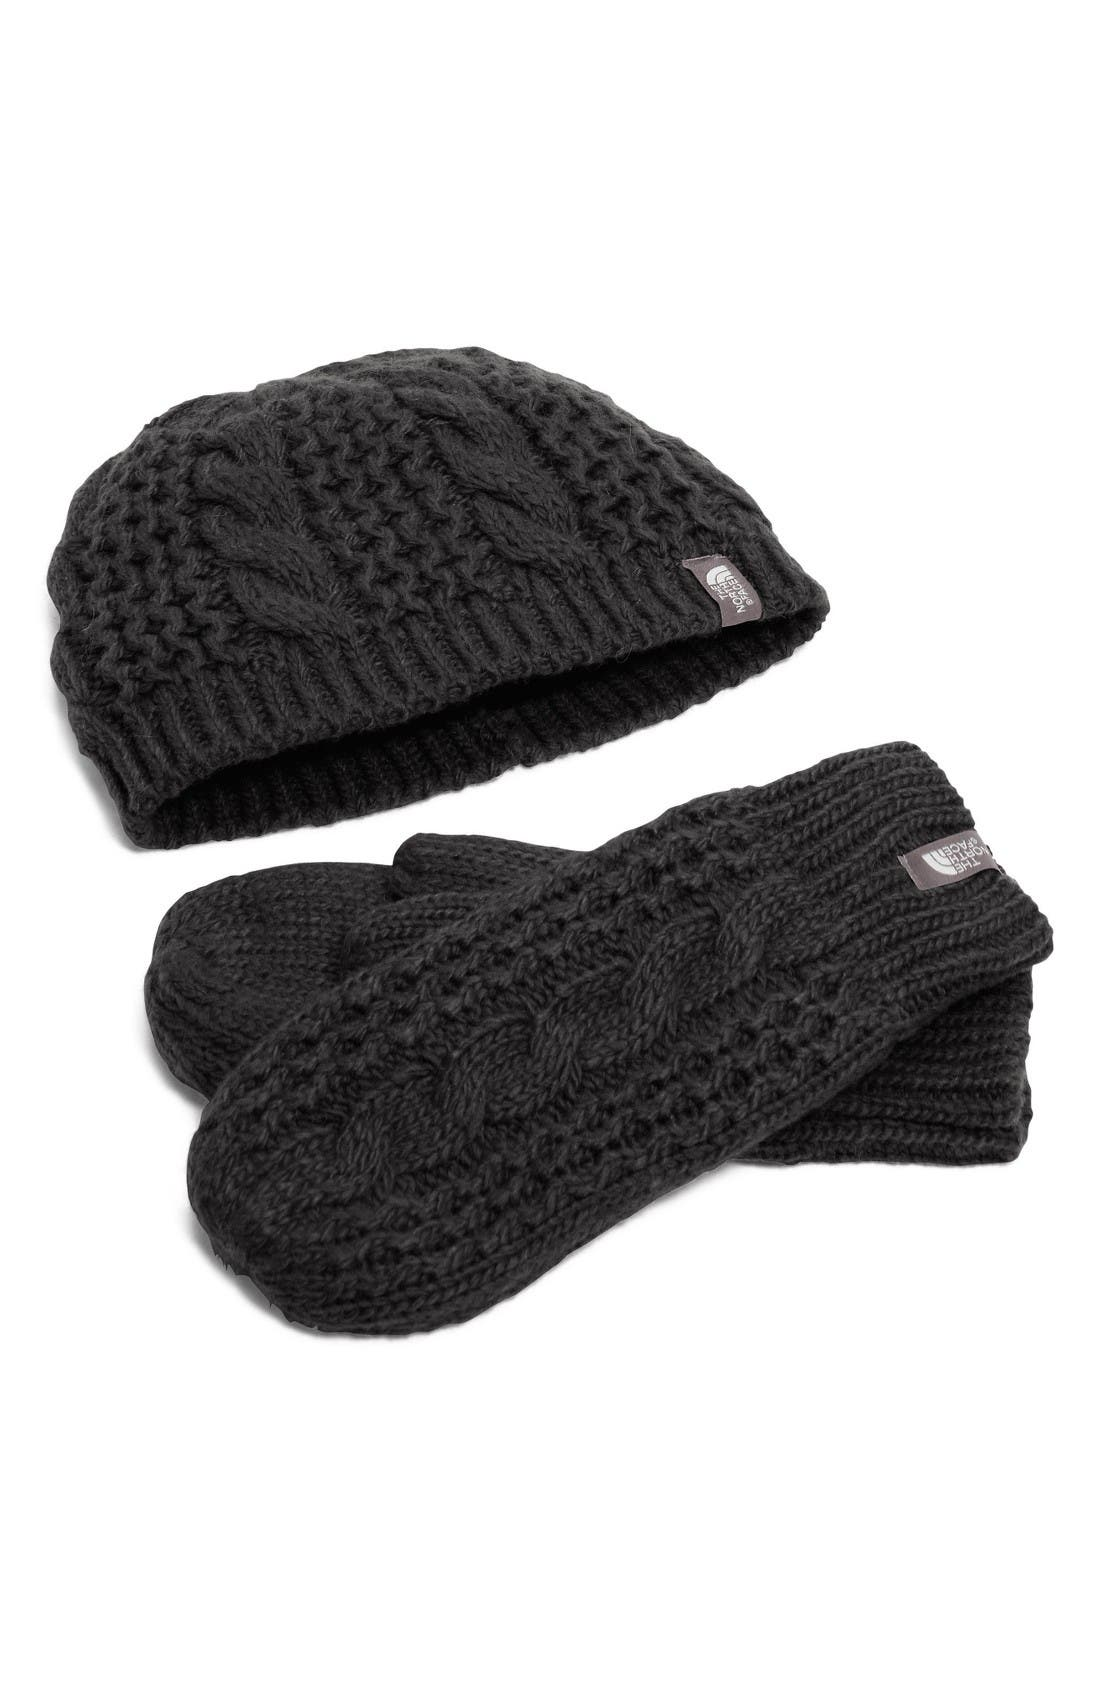 Main Image - The North Face Minna Beanie & Mittens